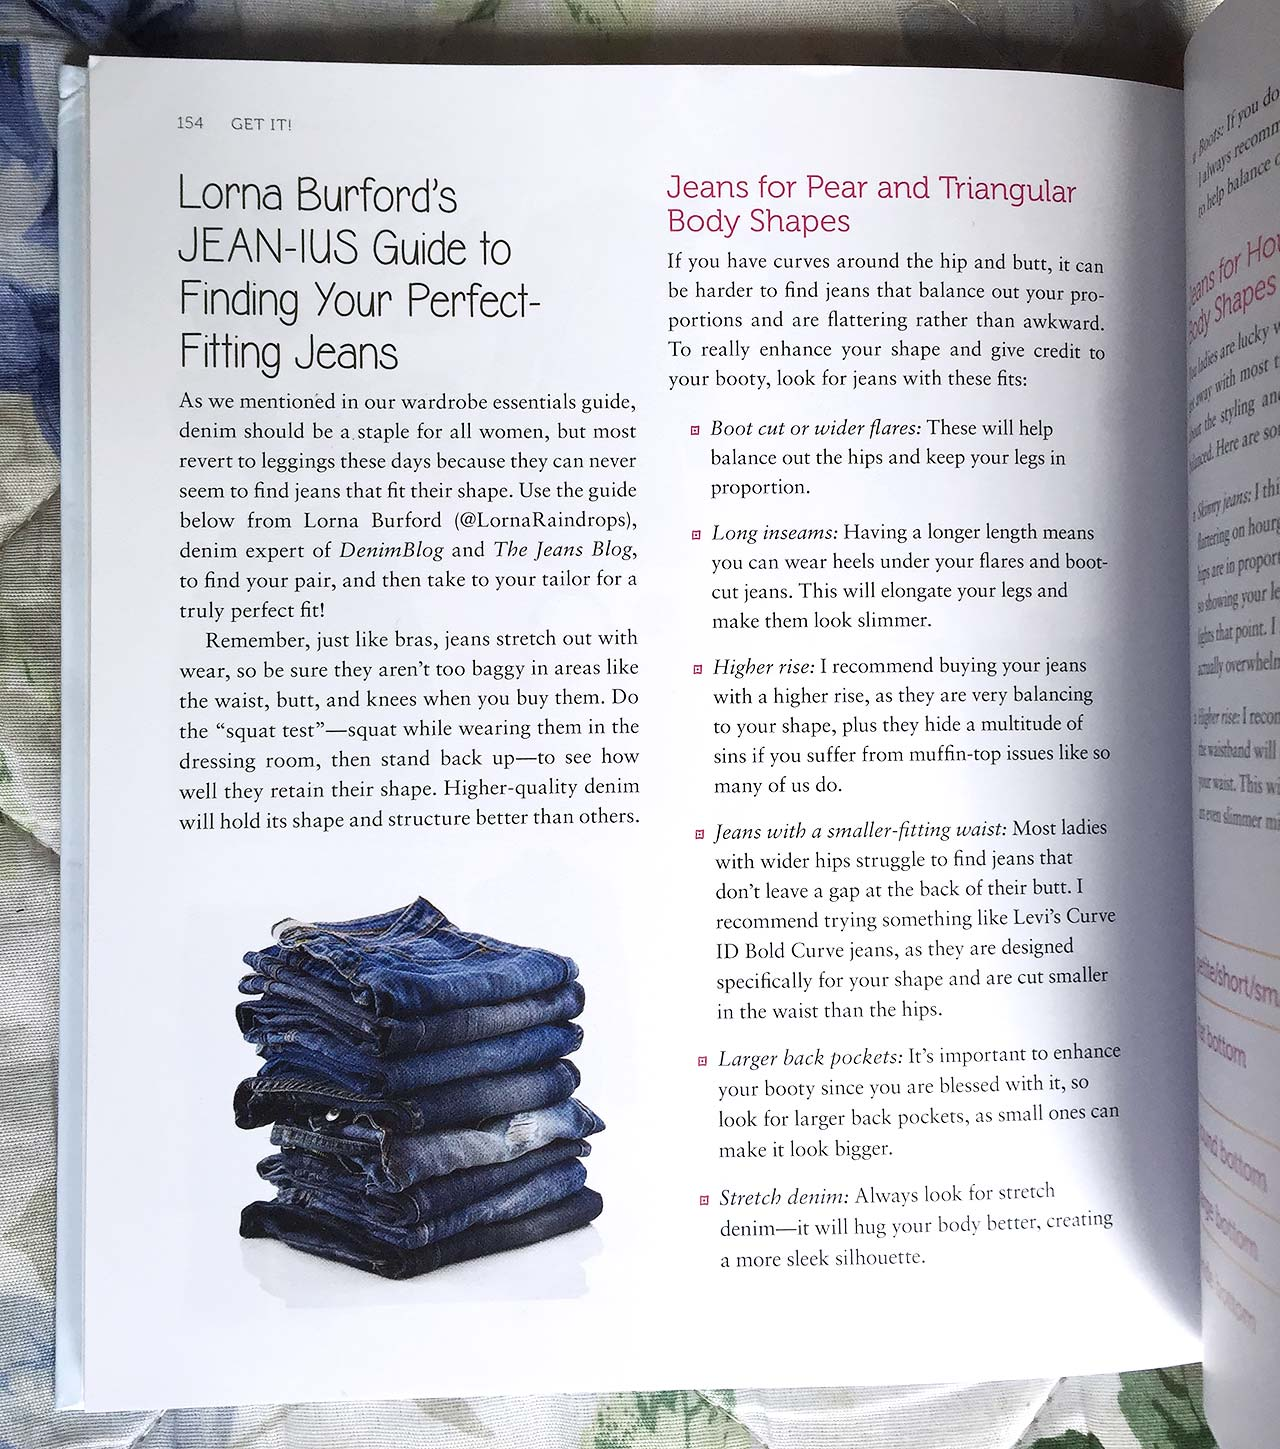 finding-your-perfect-fitting-jeans-book